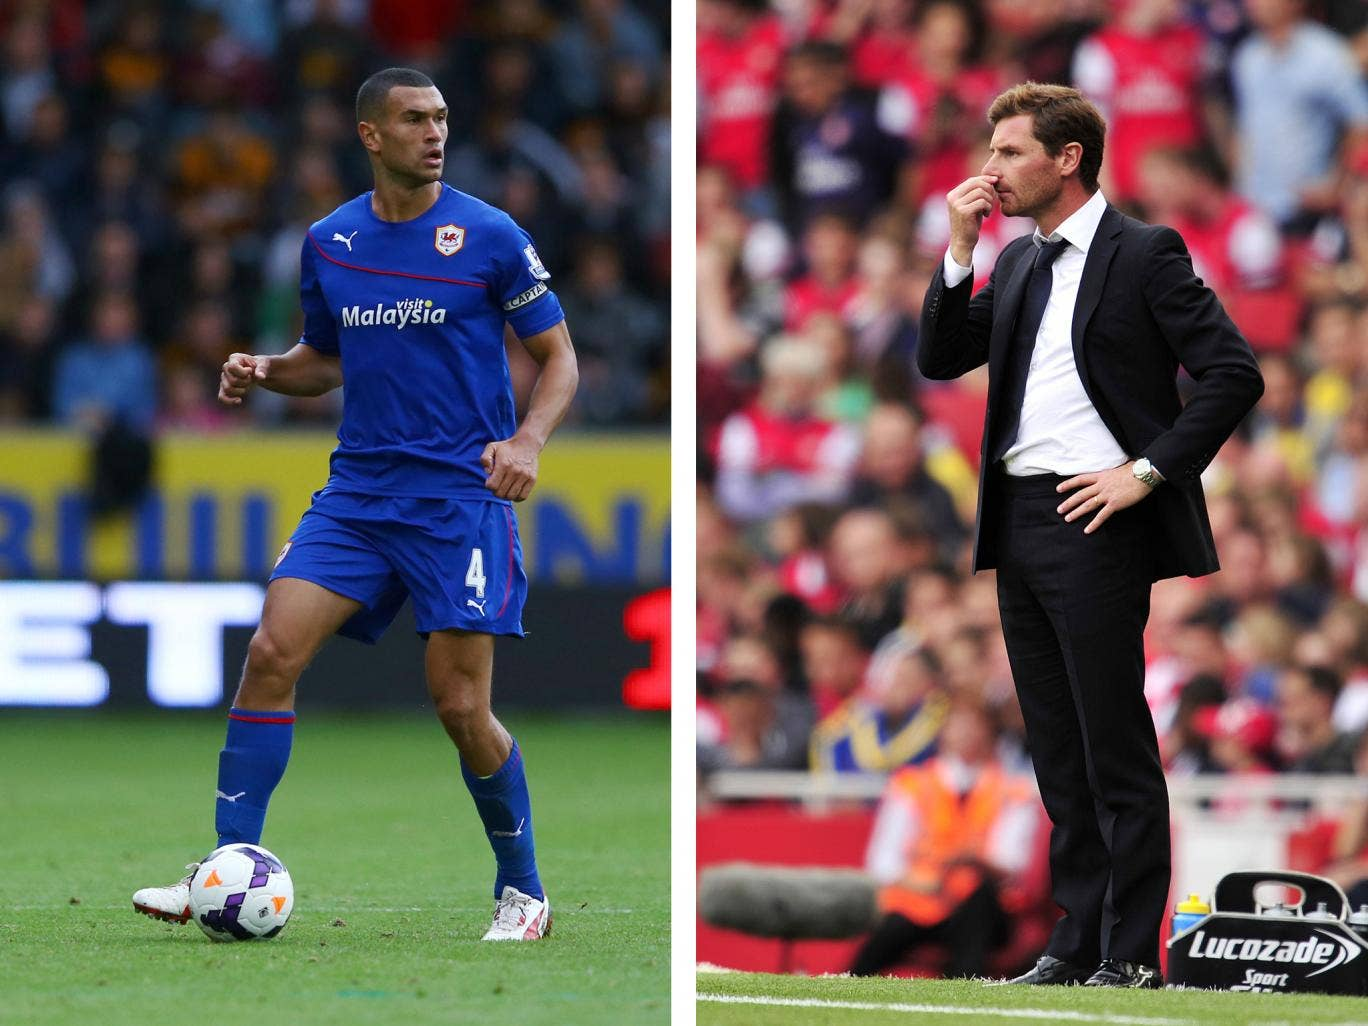 Steven Caulker was allowed to leave Tottenham and join Cardiff by Andre Villas-Boas